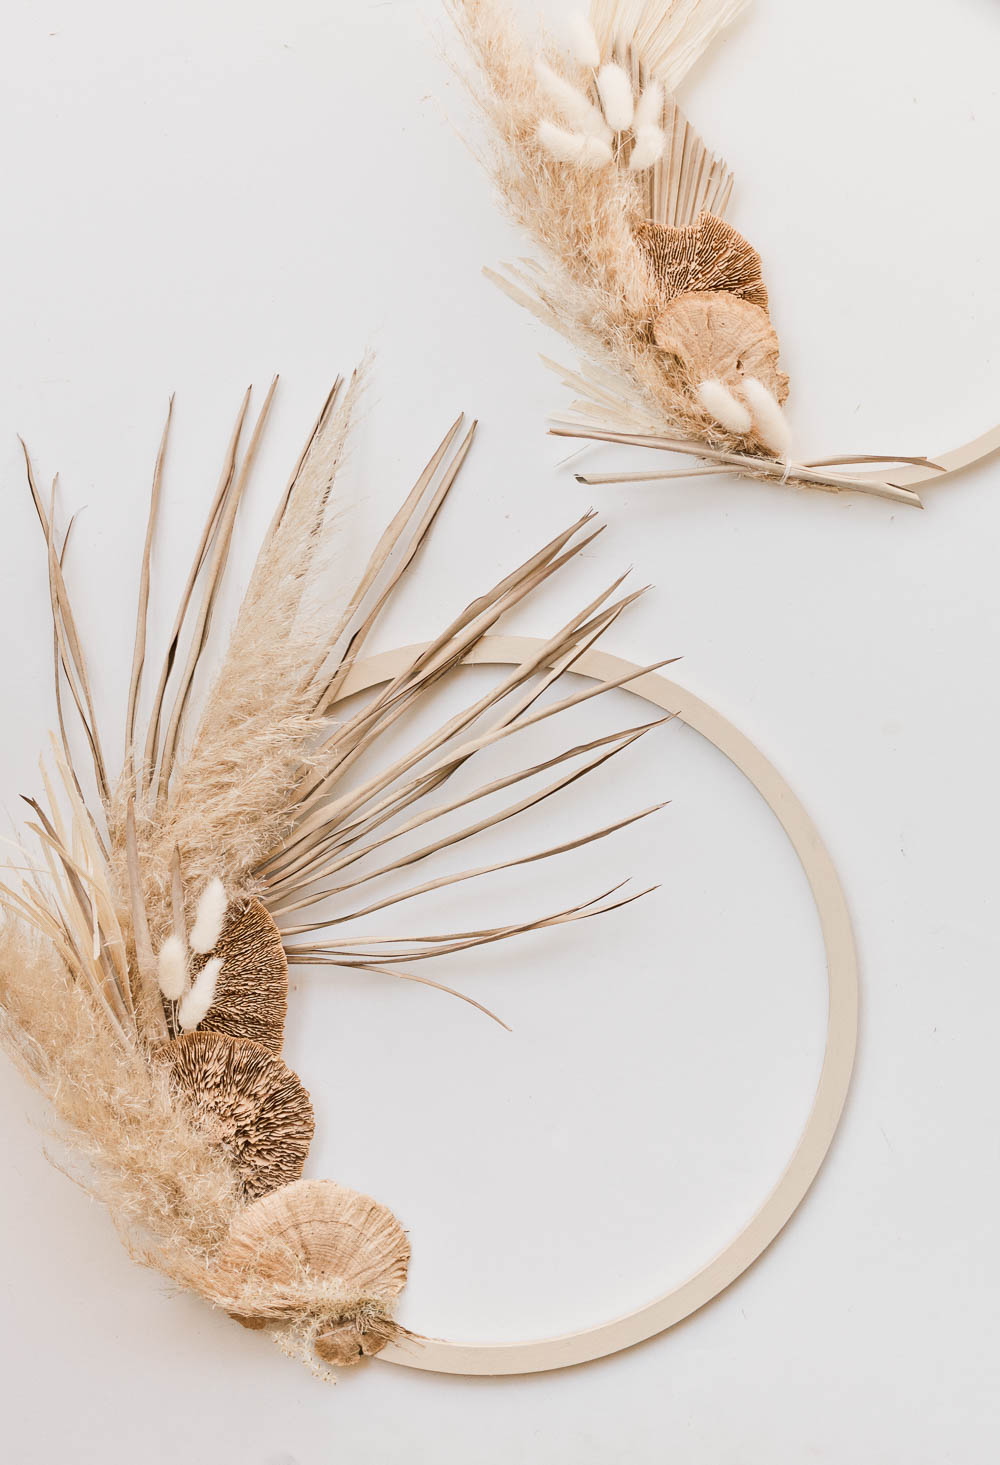 Two modern asymmetrical fall wreaths - made of pampas grass, wheat, and palm leaves.